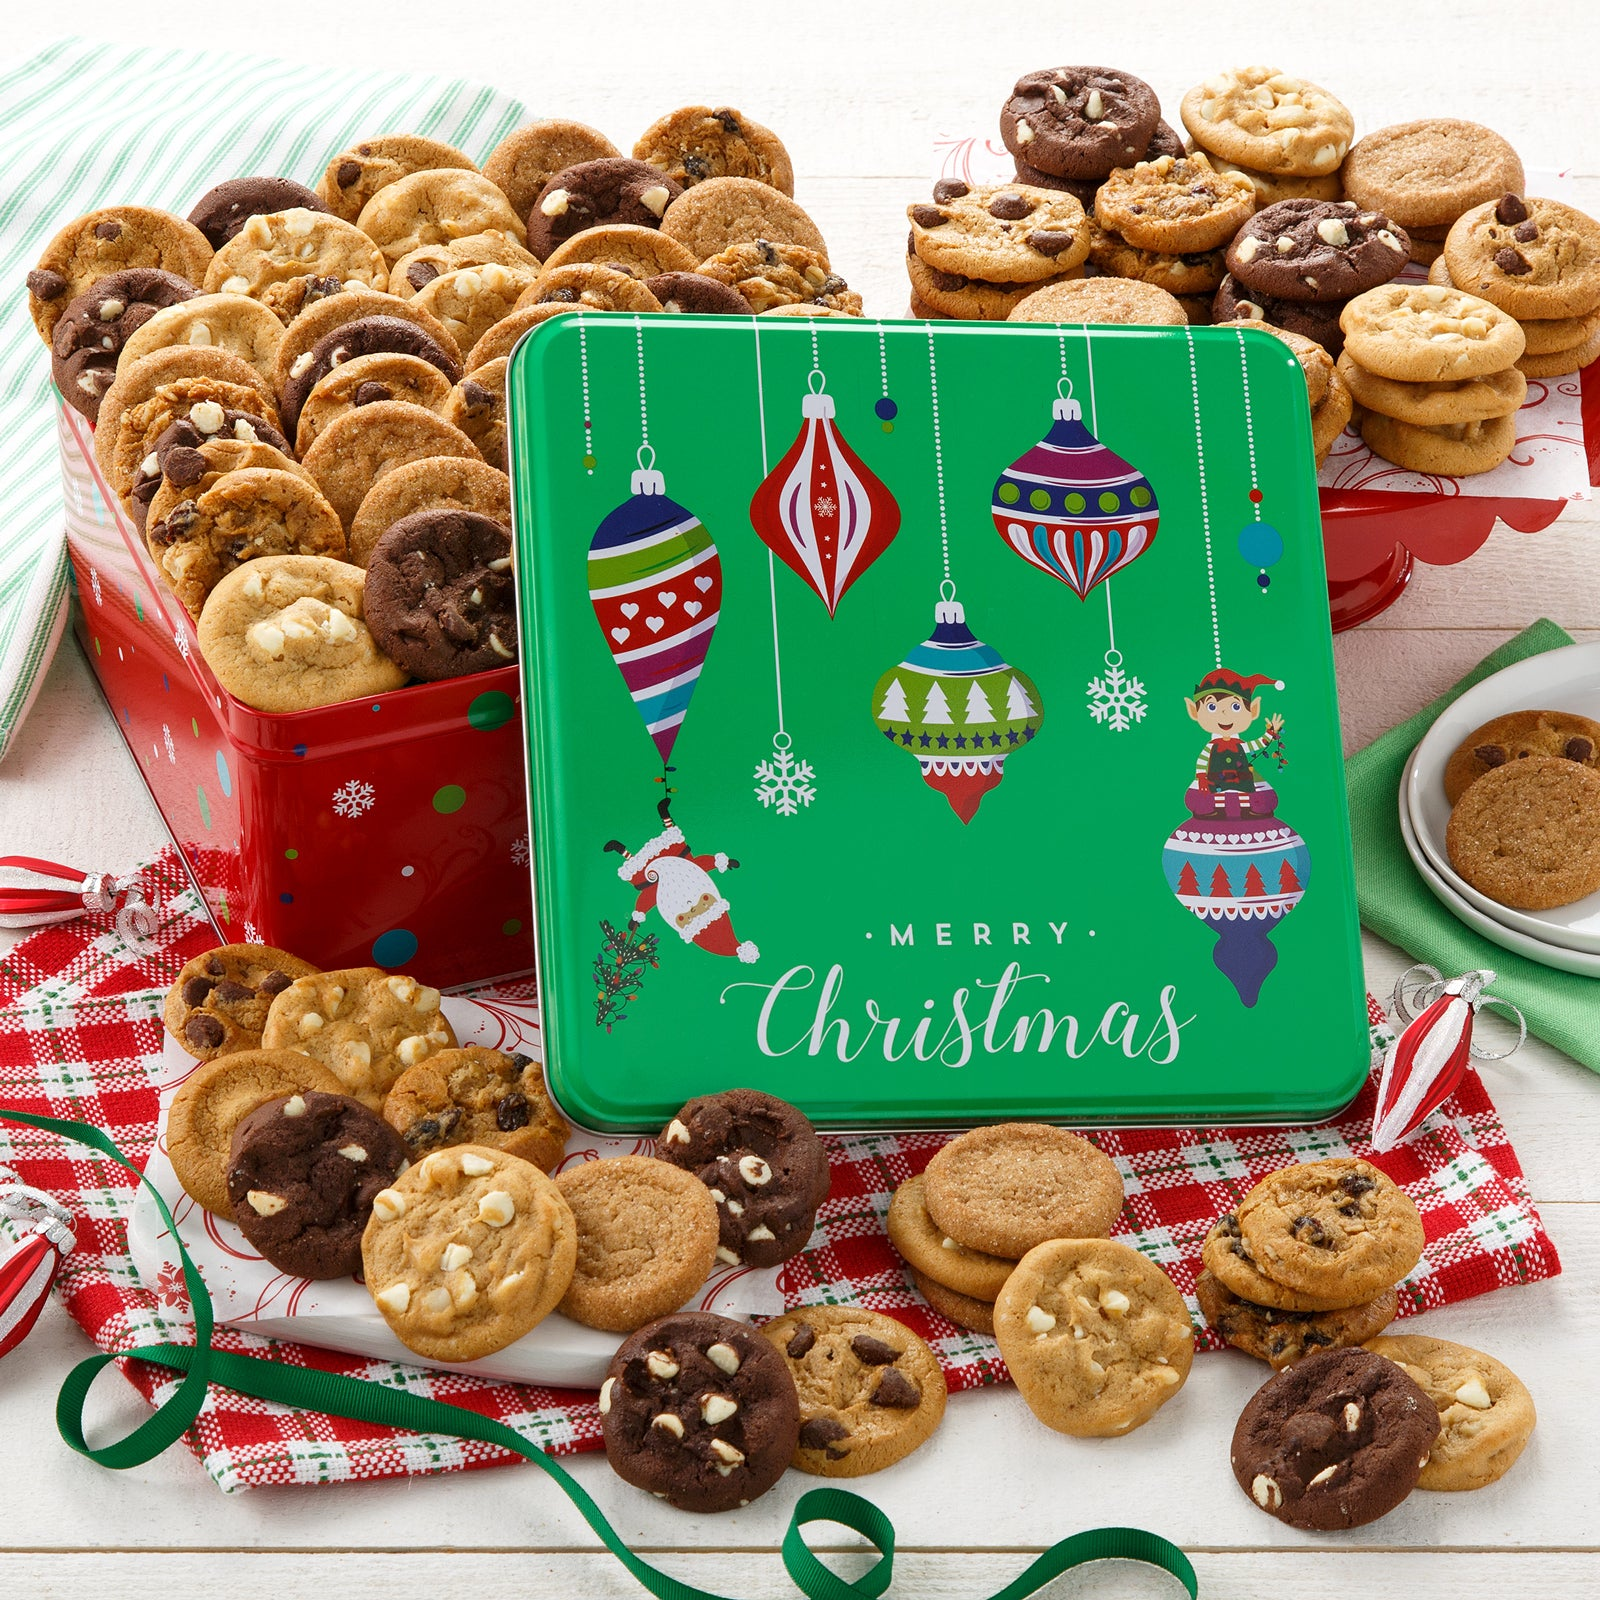 Mrs. Fields. Merry Christmas 90 Nibblers® Bite-Sized Cookie Tin